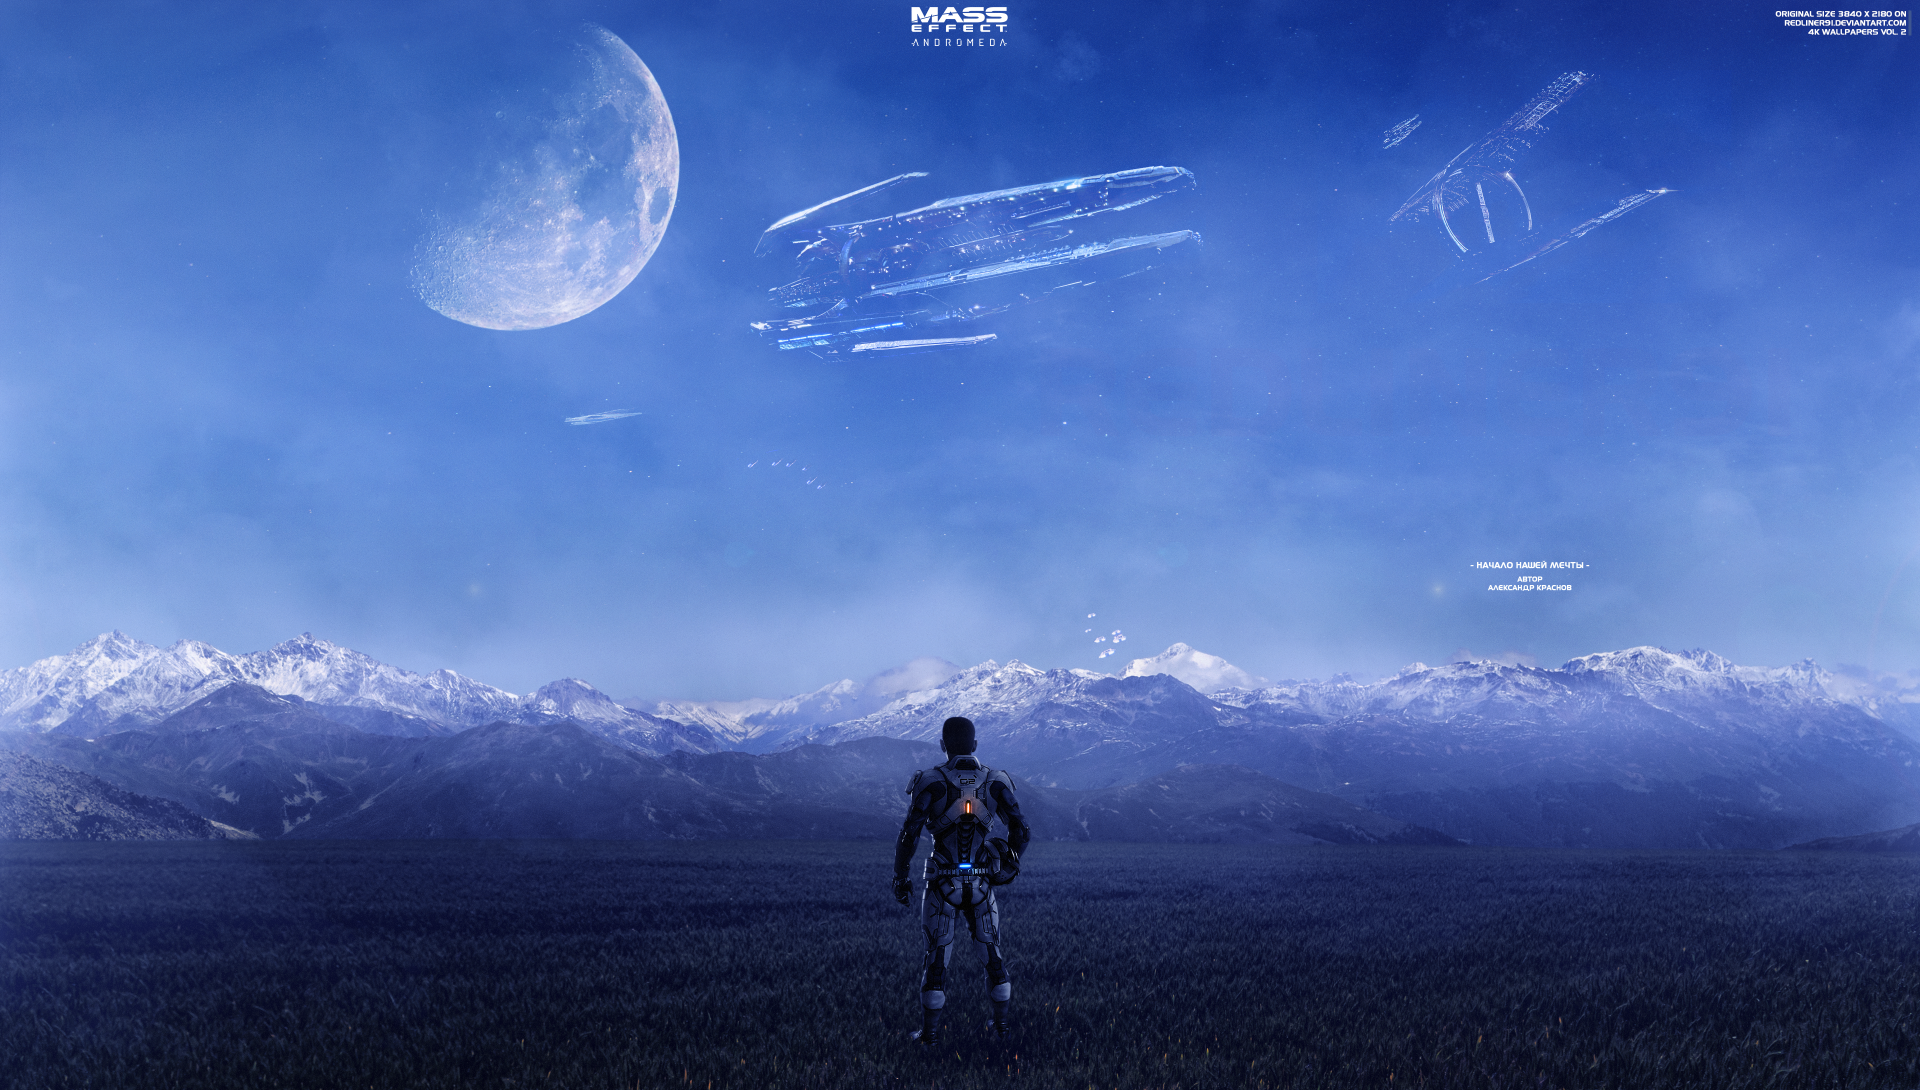 3840x2180 Mass Effect Andromeda Wallpaper Background Image View Download Comment And Rate Wallpaper Abyss Mass Effect Background Images Landscape